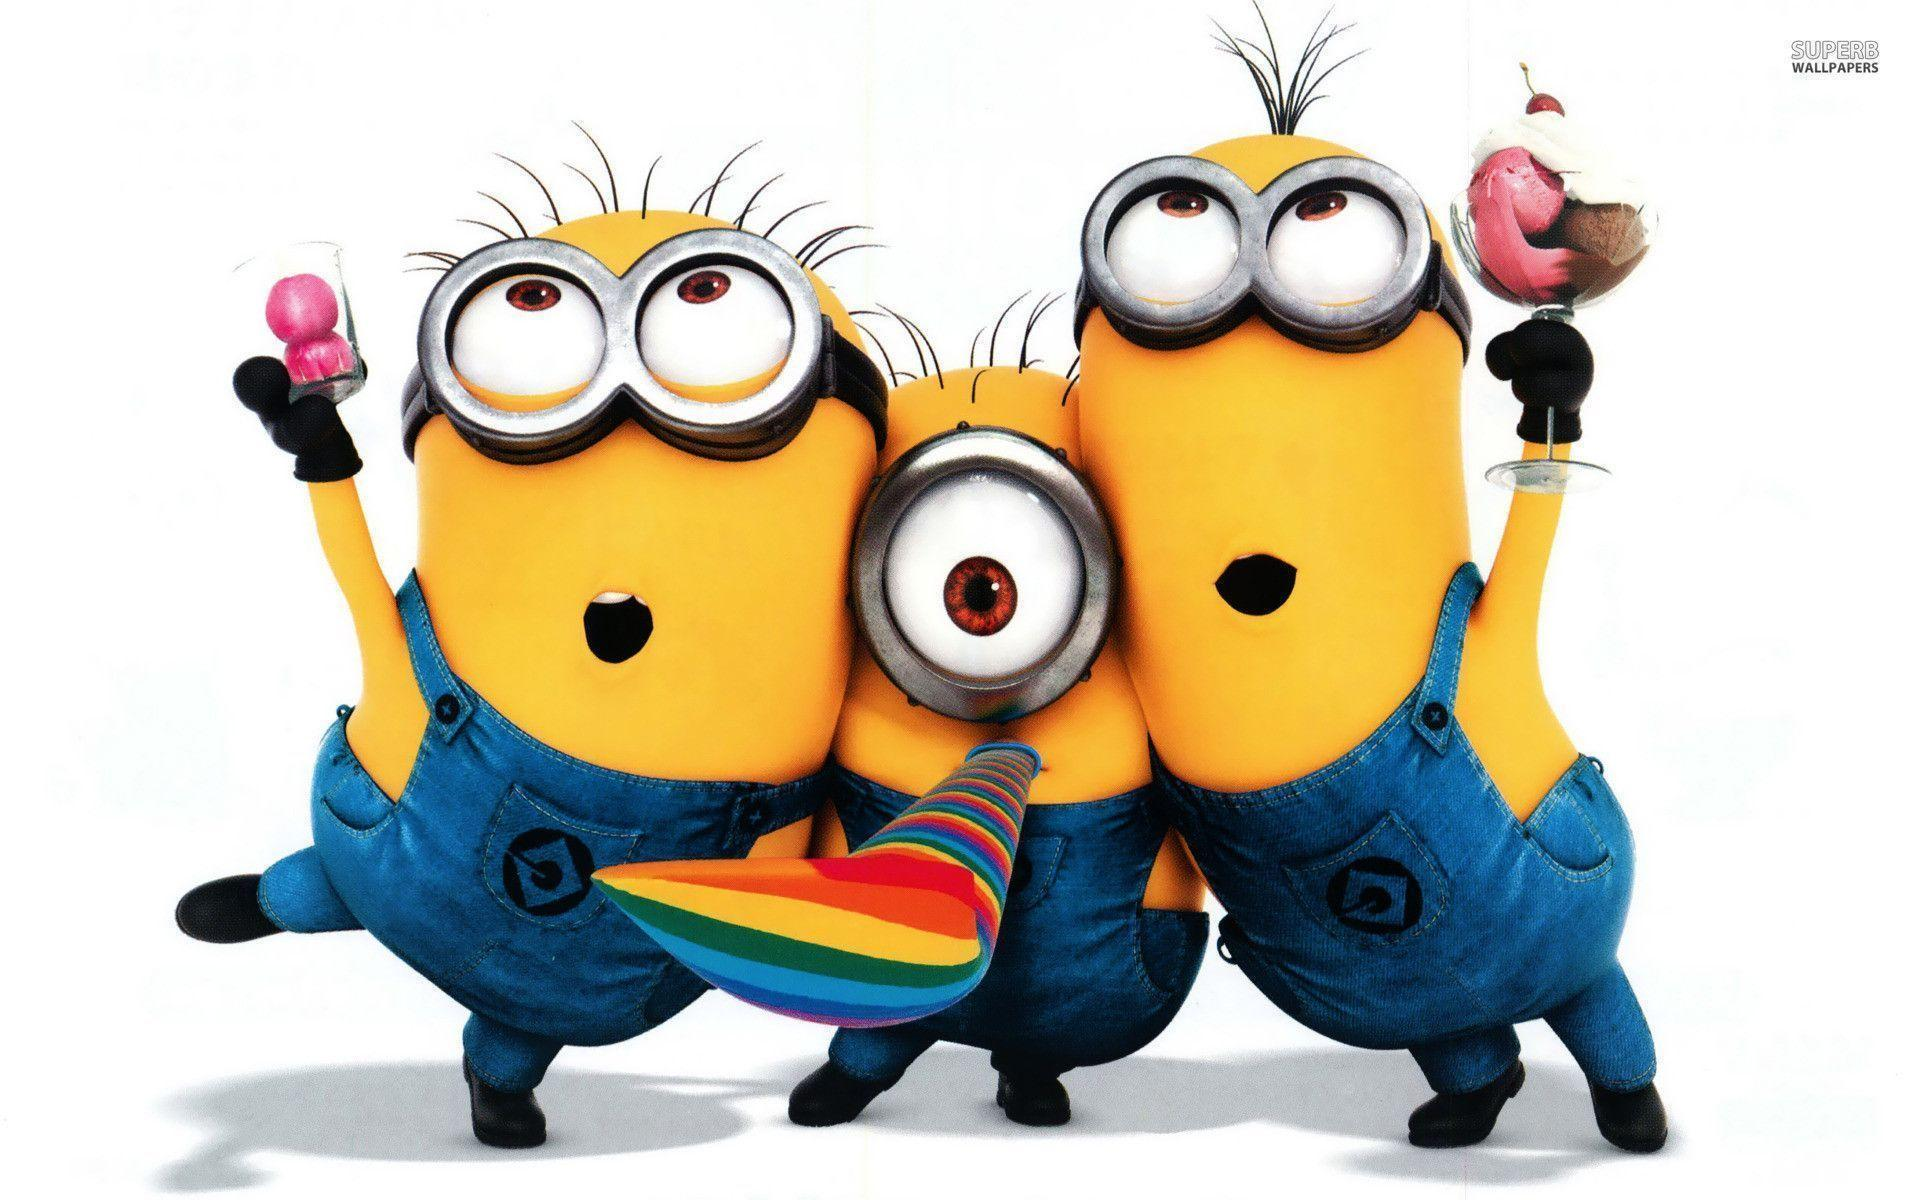 Minions Wallpapers - Full HD wallpaper search